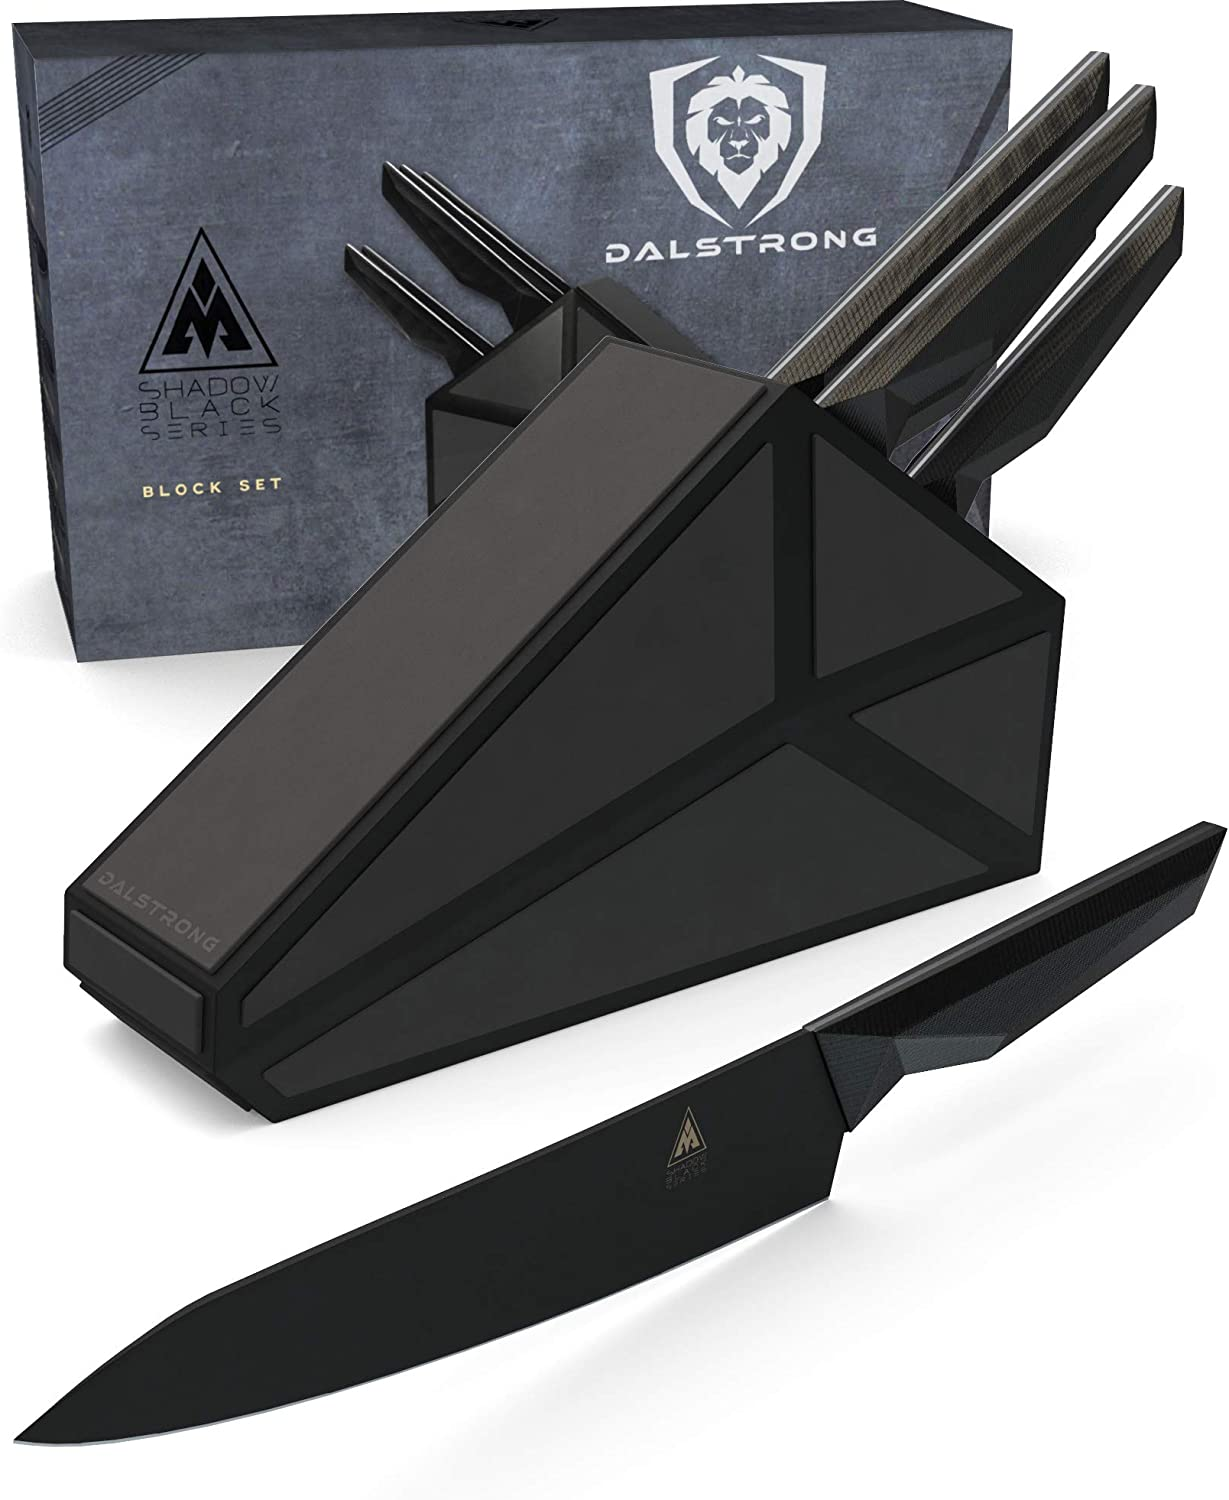 DALSTRONG - 5 Piece Knife Set Block - Shadow Black Series - Black Titanium Coated German HC Steel - NSF Certified